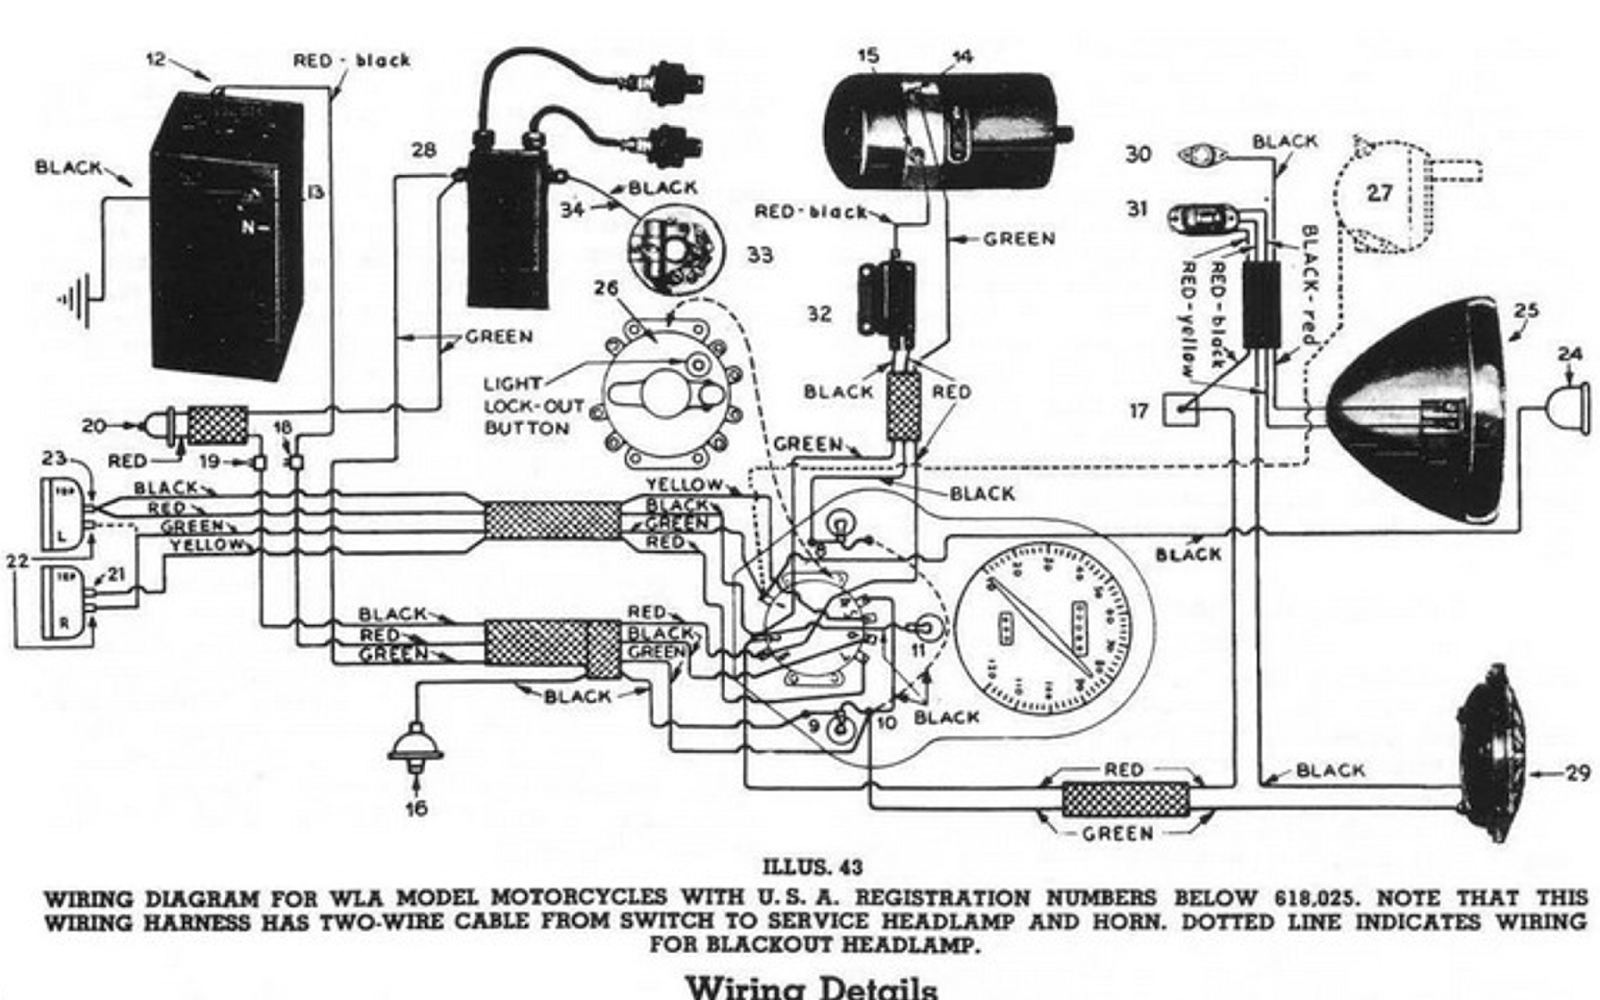 hight resolution of 1941 harley davidson wl restoration re wiring the harley davidson wl harley davidson softail wiring diagram harley switch diagram